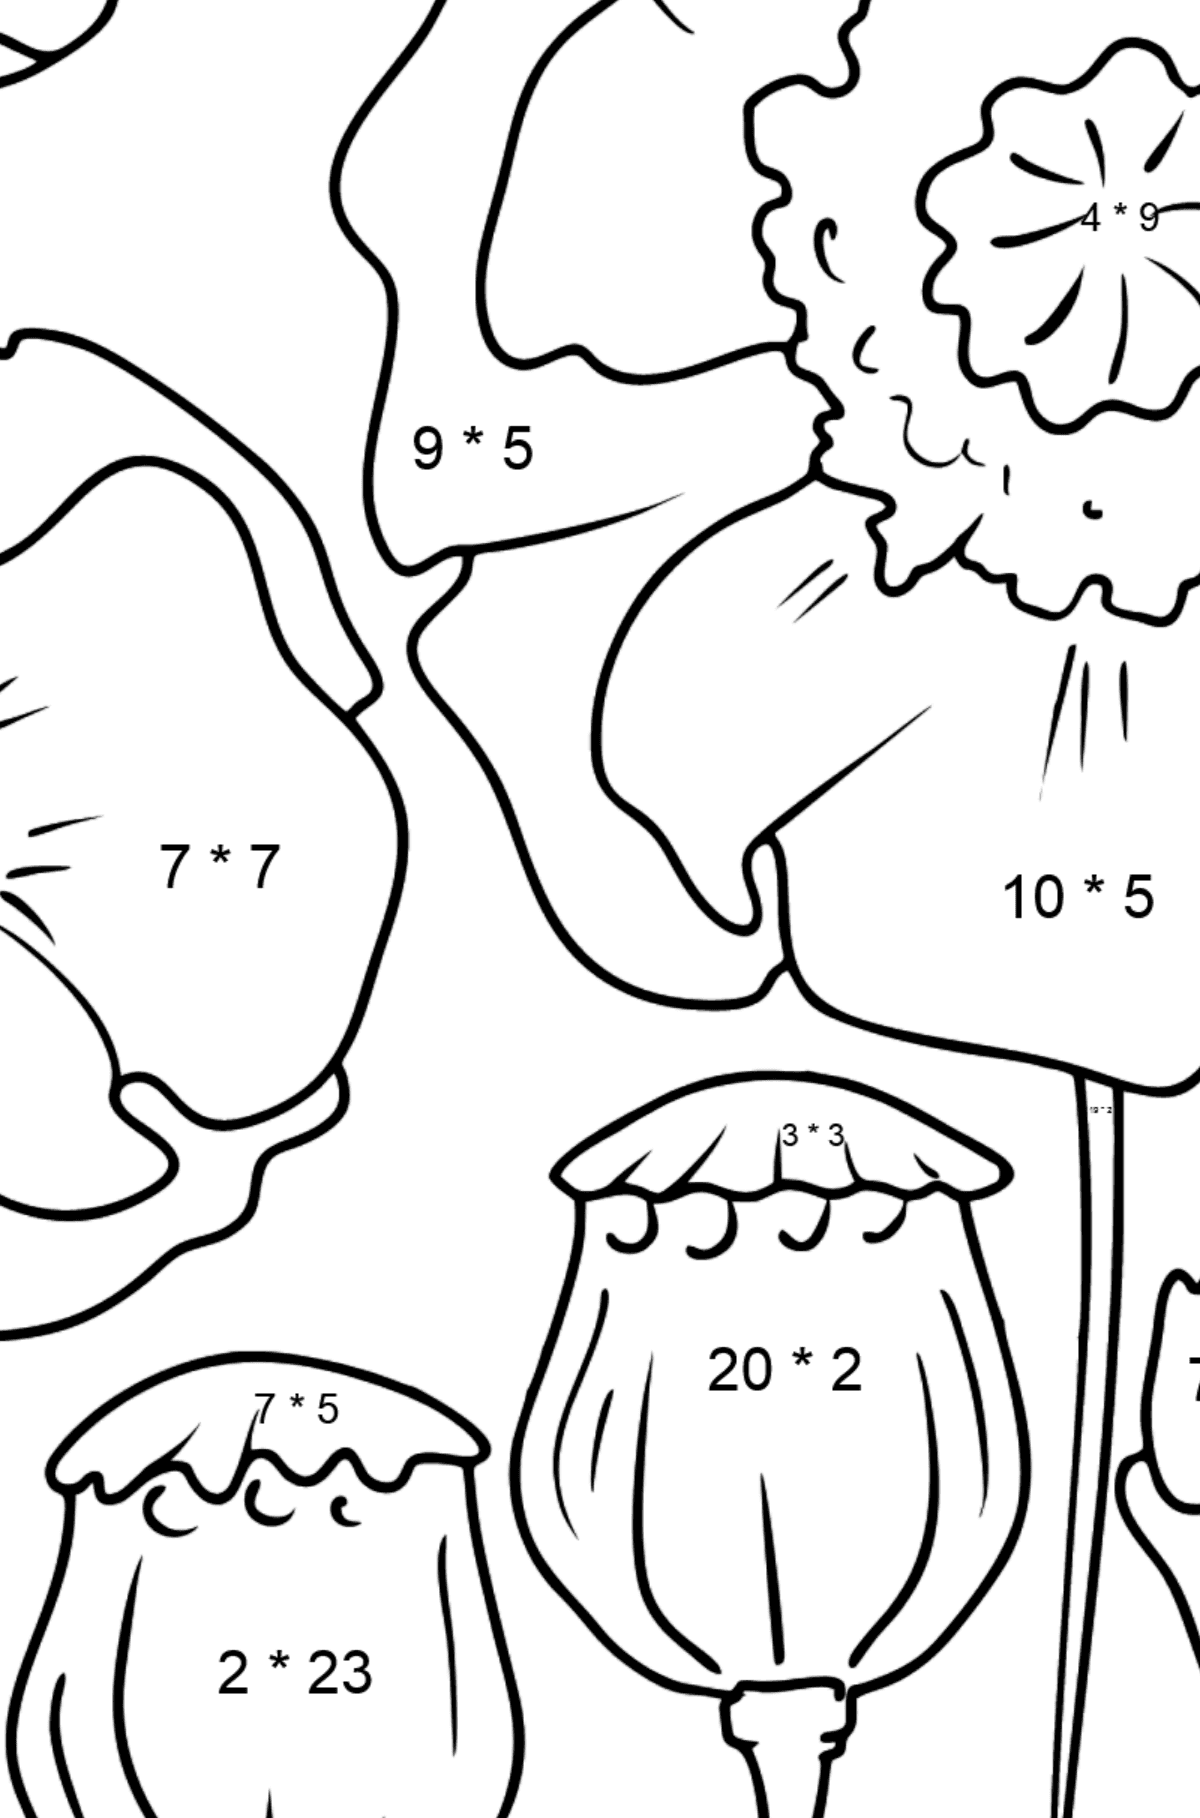 Flower Coloring Page - Poppies - Math Coloring - Multiplication for Kids